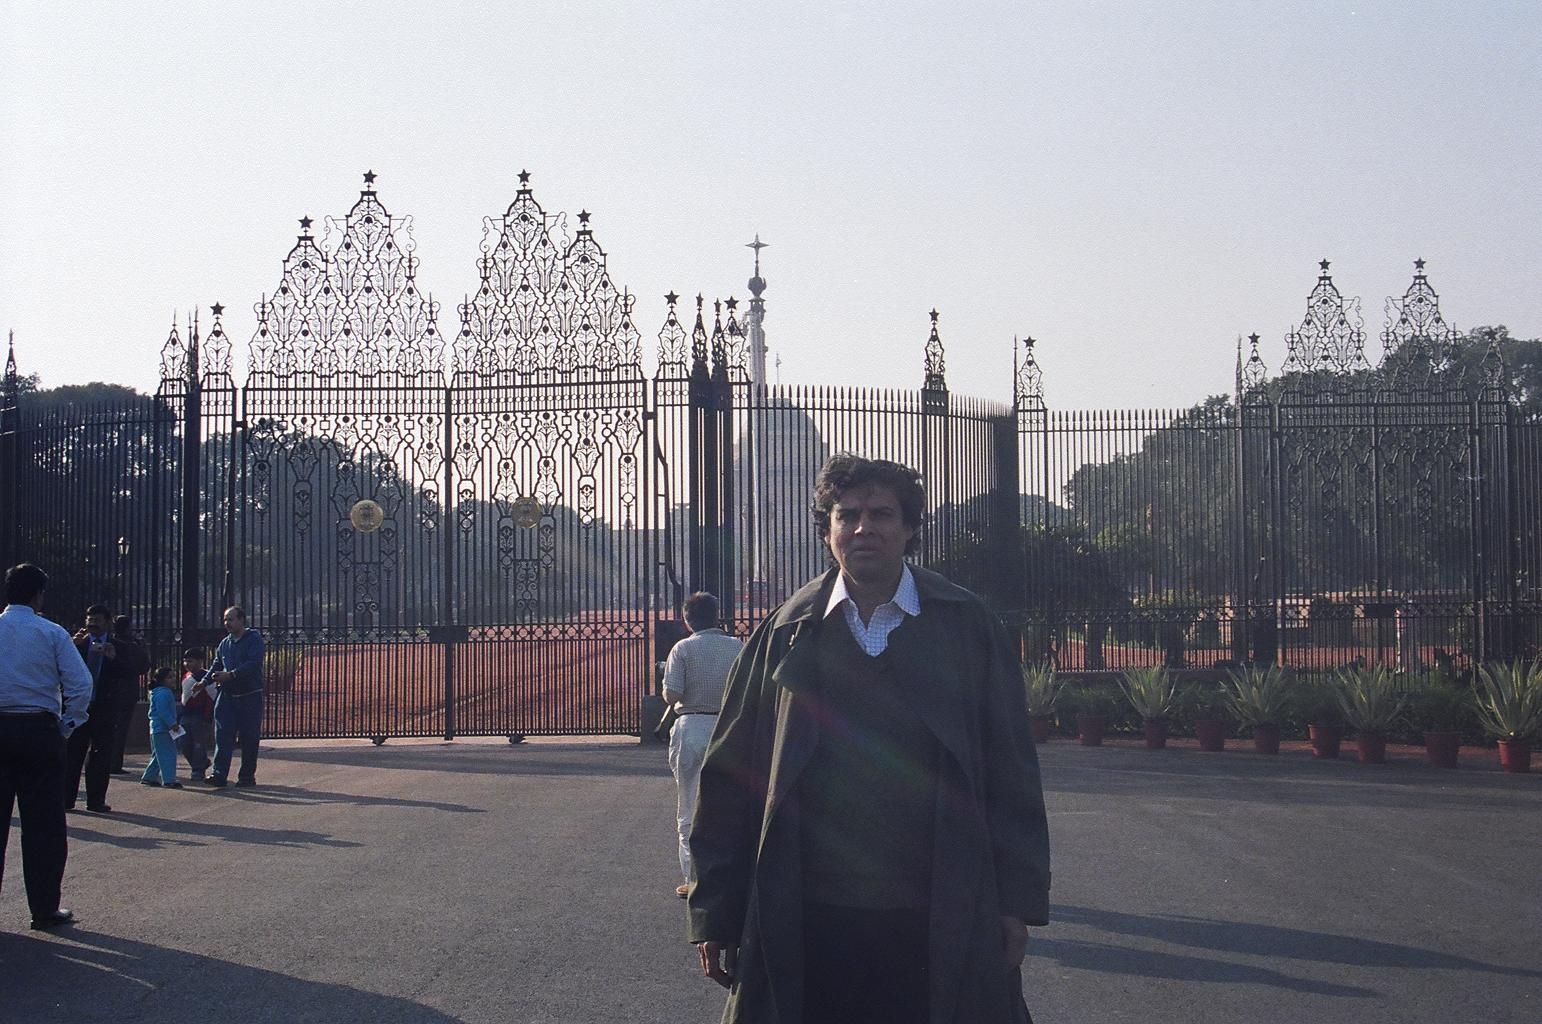 Myself, standing facing the RASHTRAPATI BHAVAN, within the compound; New Delhi. 1/14/08